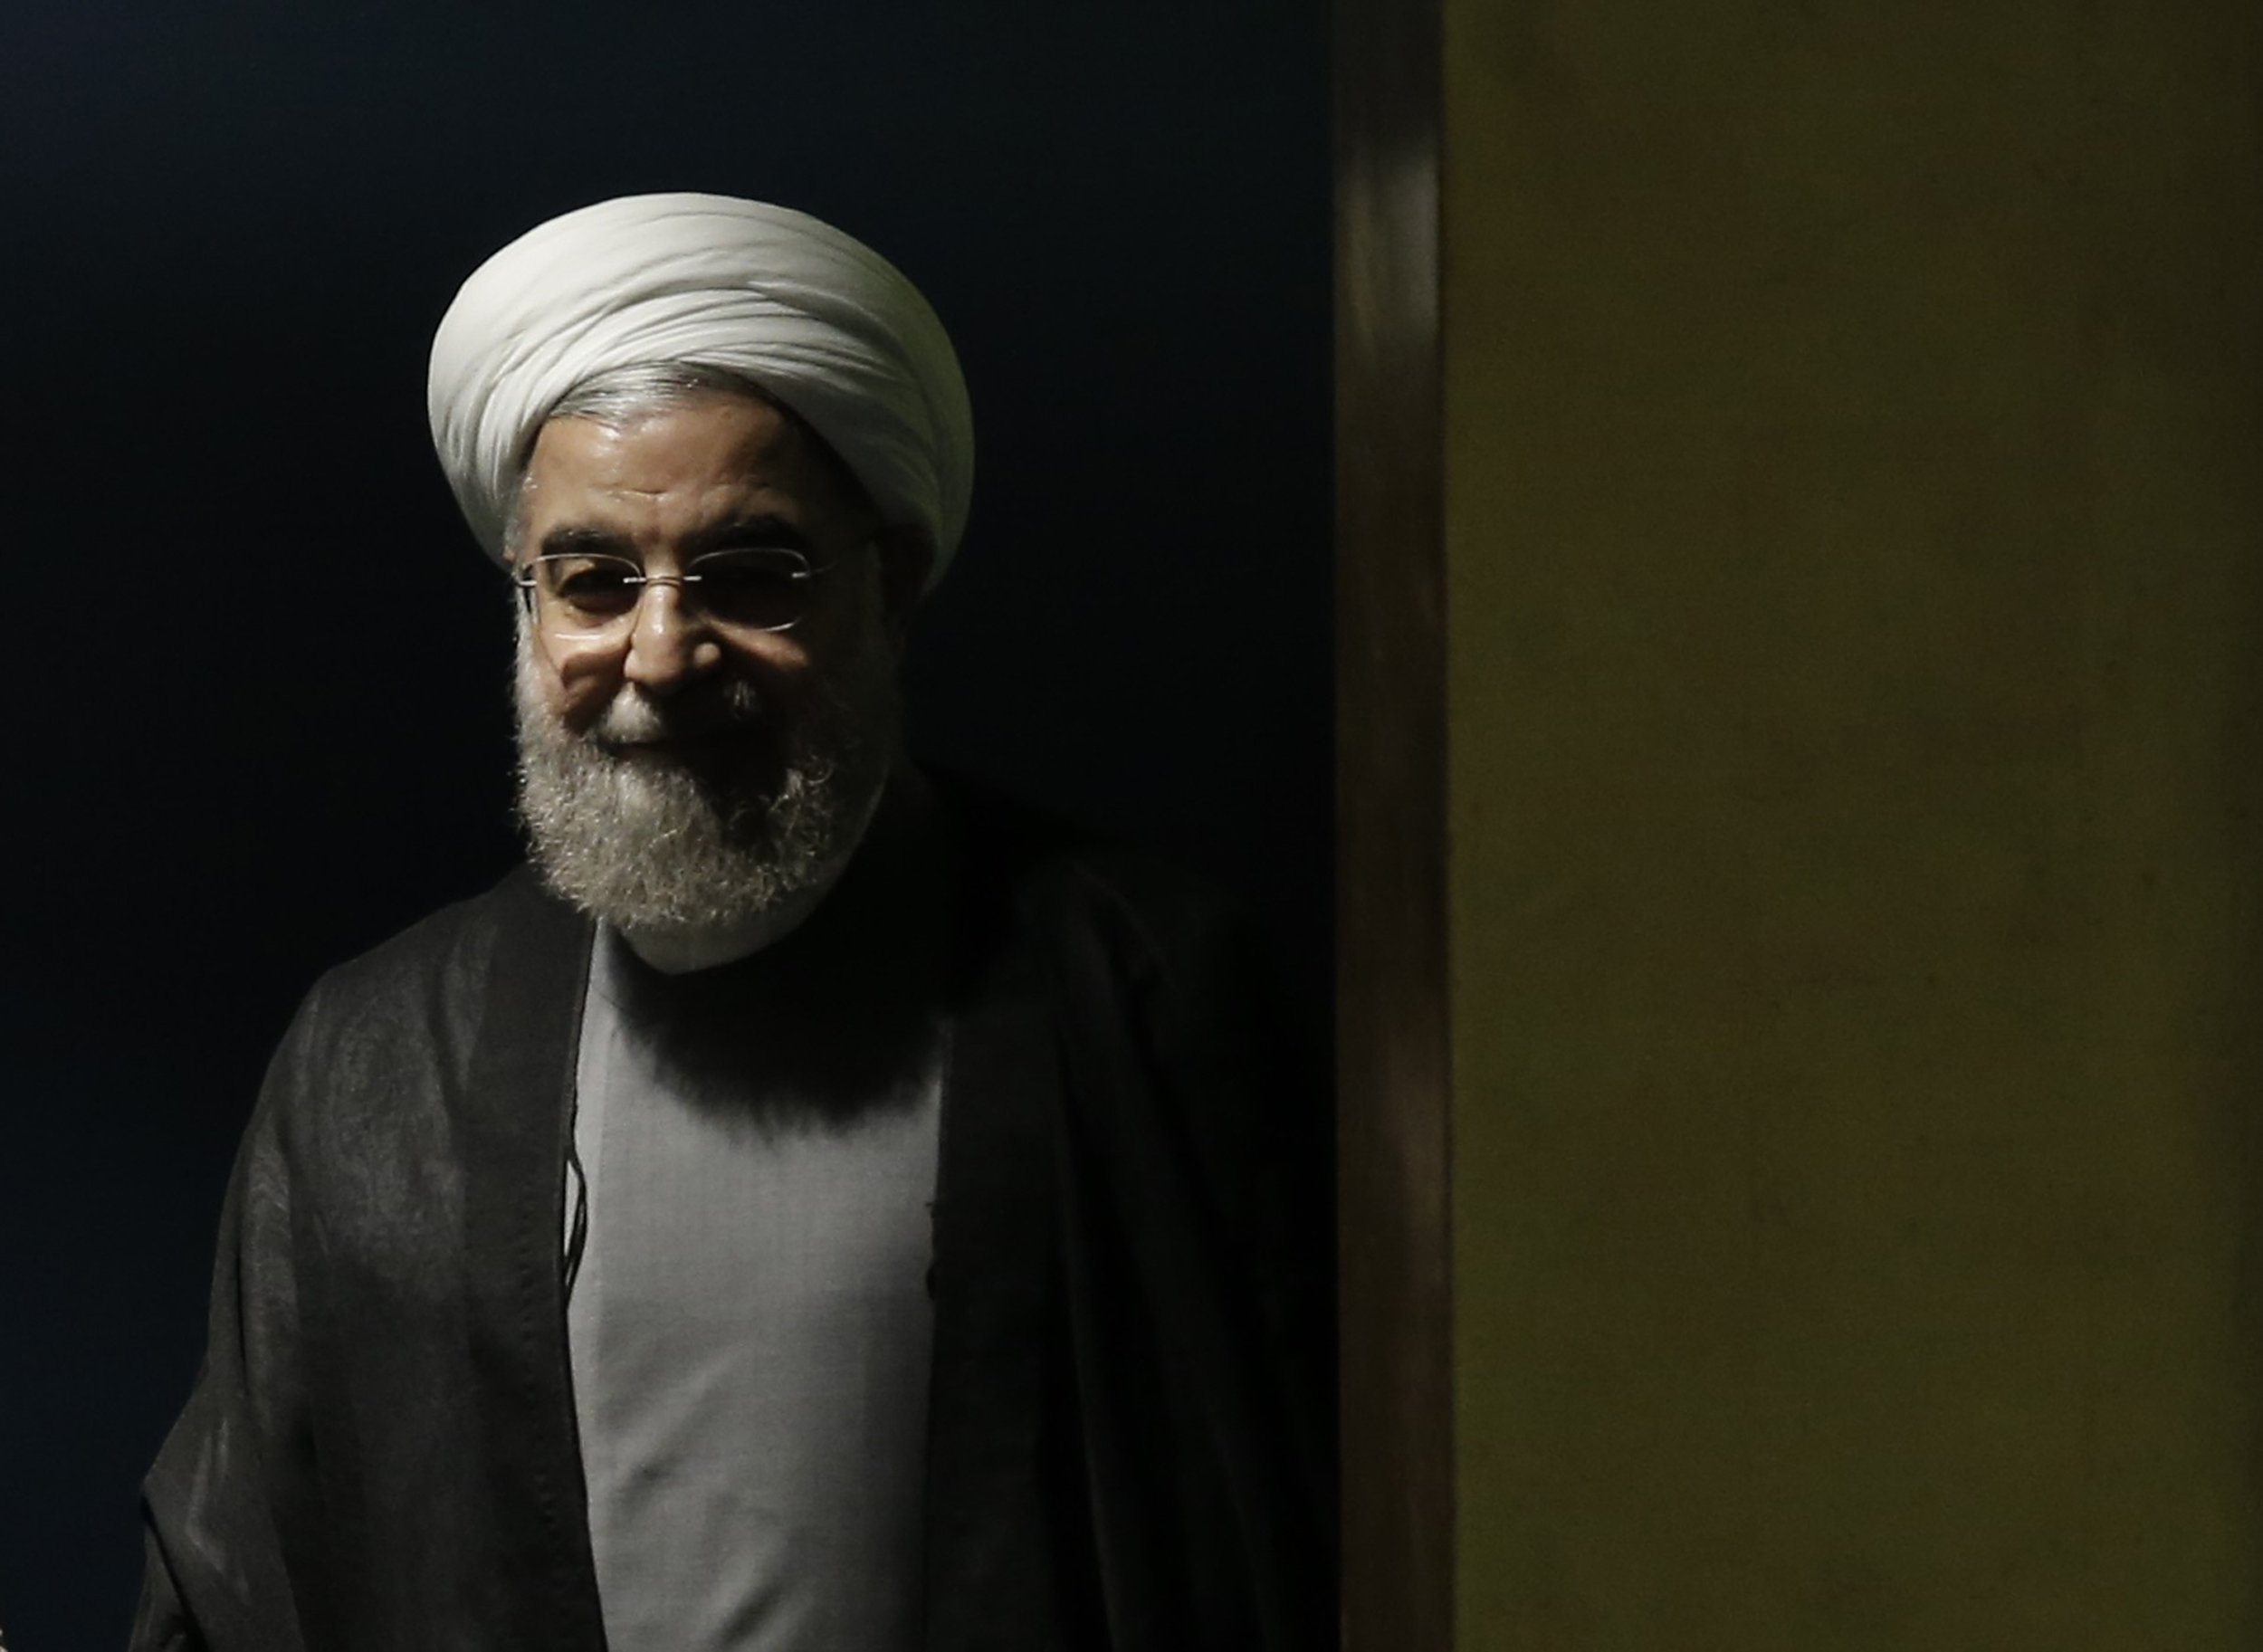 09_22_Rouhani_threat_01